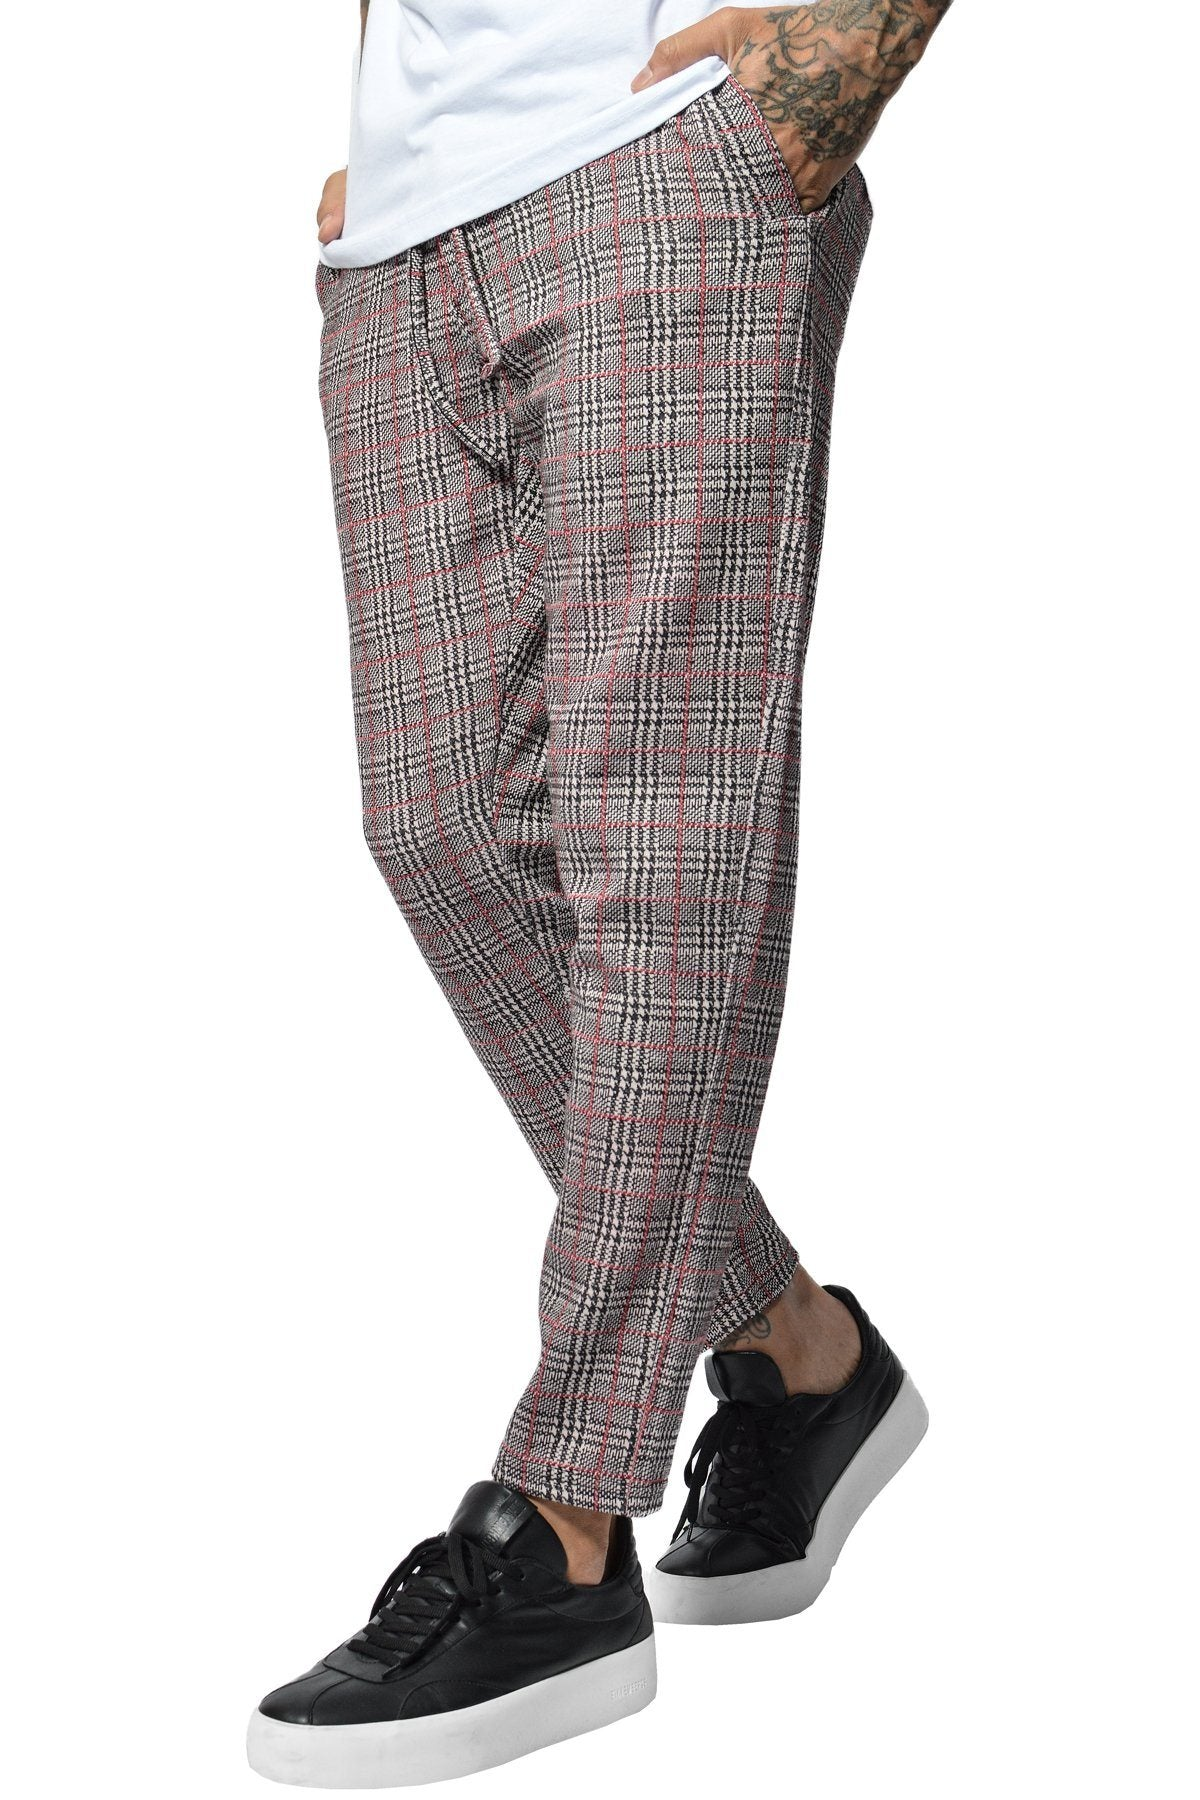 PEGADOR - Luca Checkered Pants Black White Red - PEGADOR - Dominate the Hype